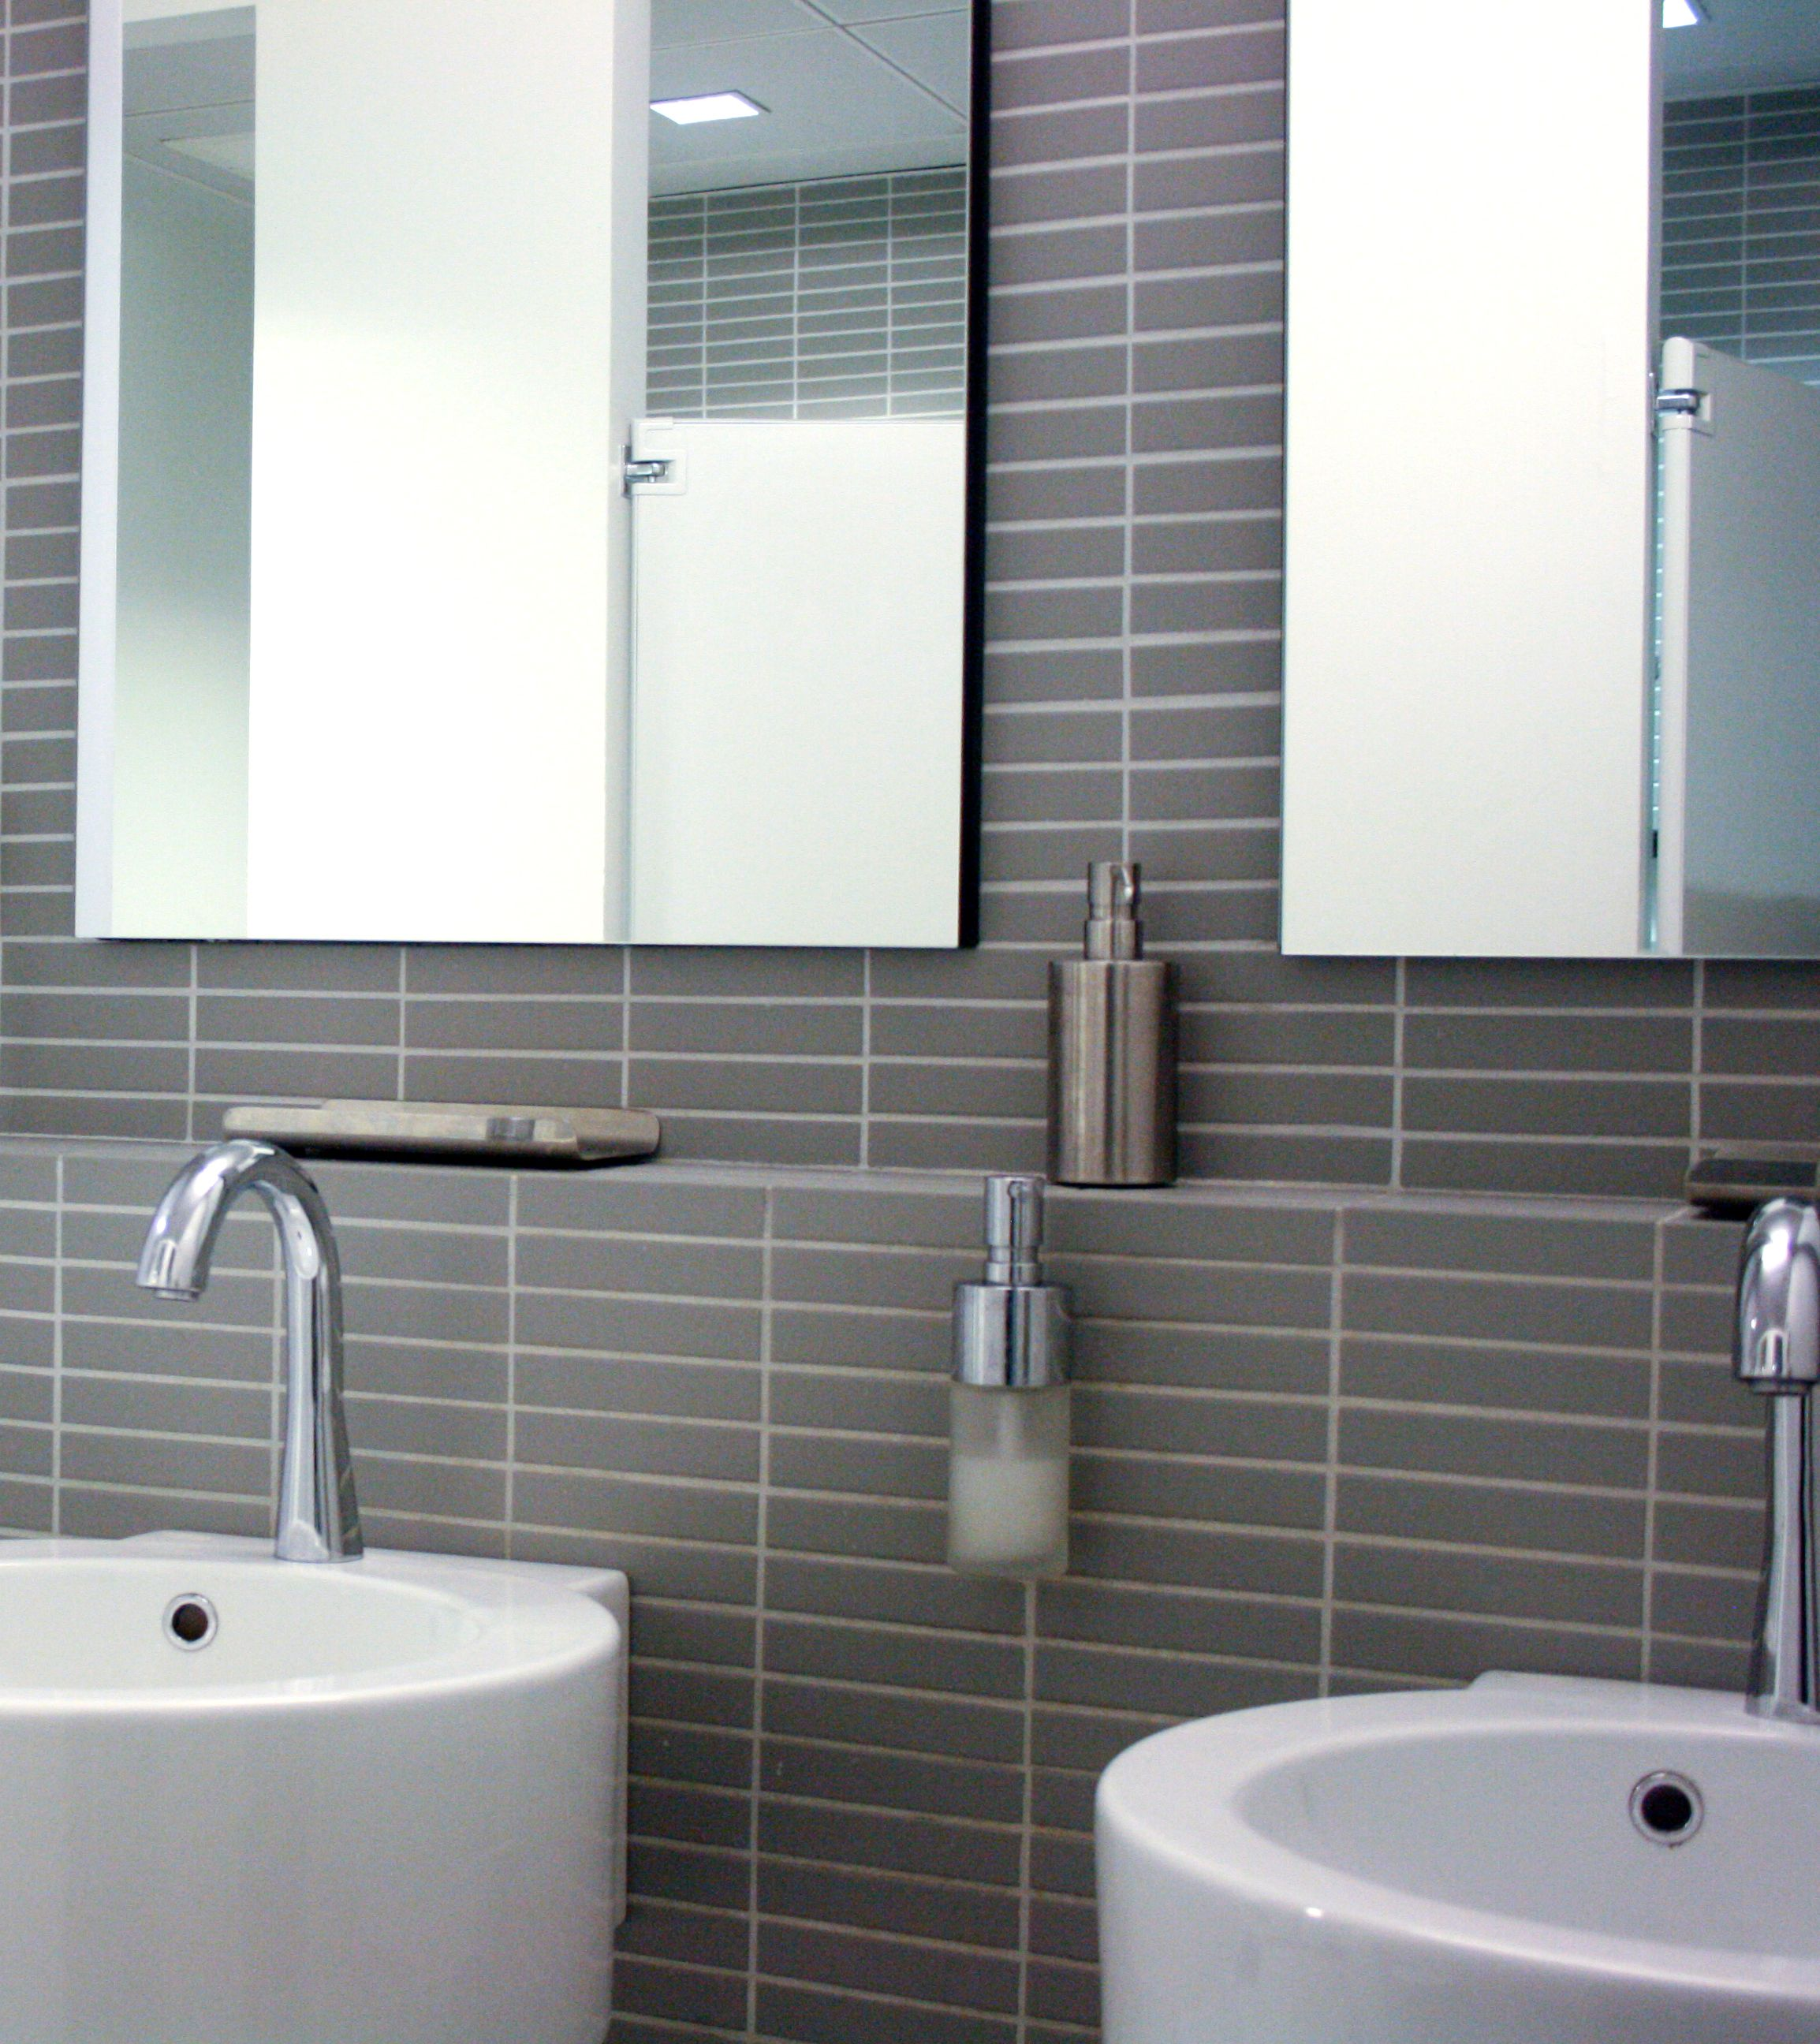 CoveringsETC EcoGres Tiles Are Highly Sustainable Easy To - Slip resistant tiles bathroom for bathroom decor ideas